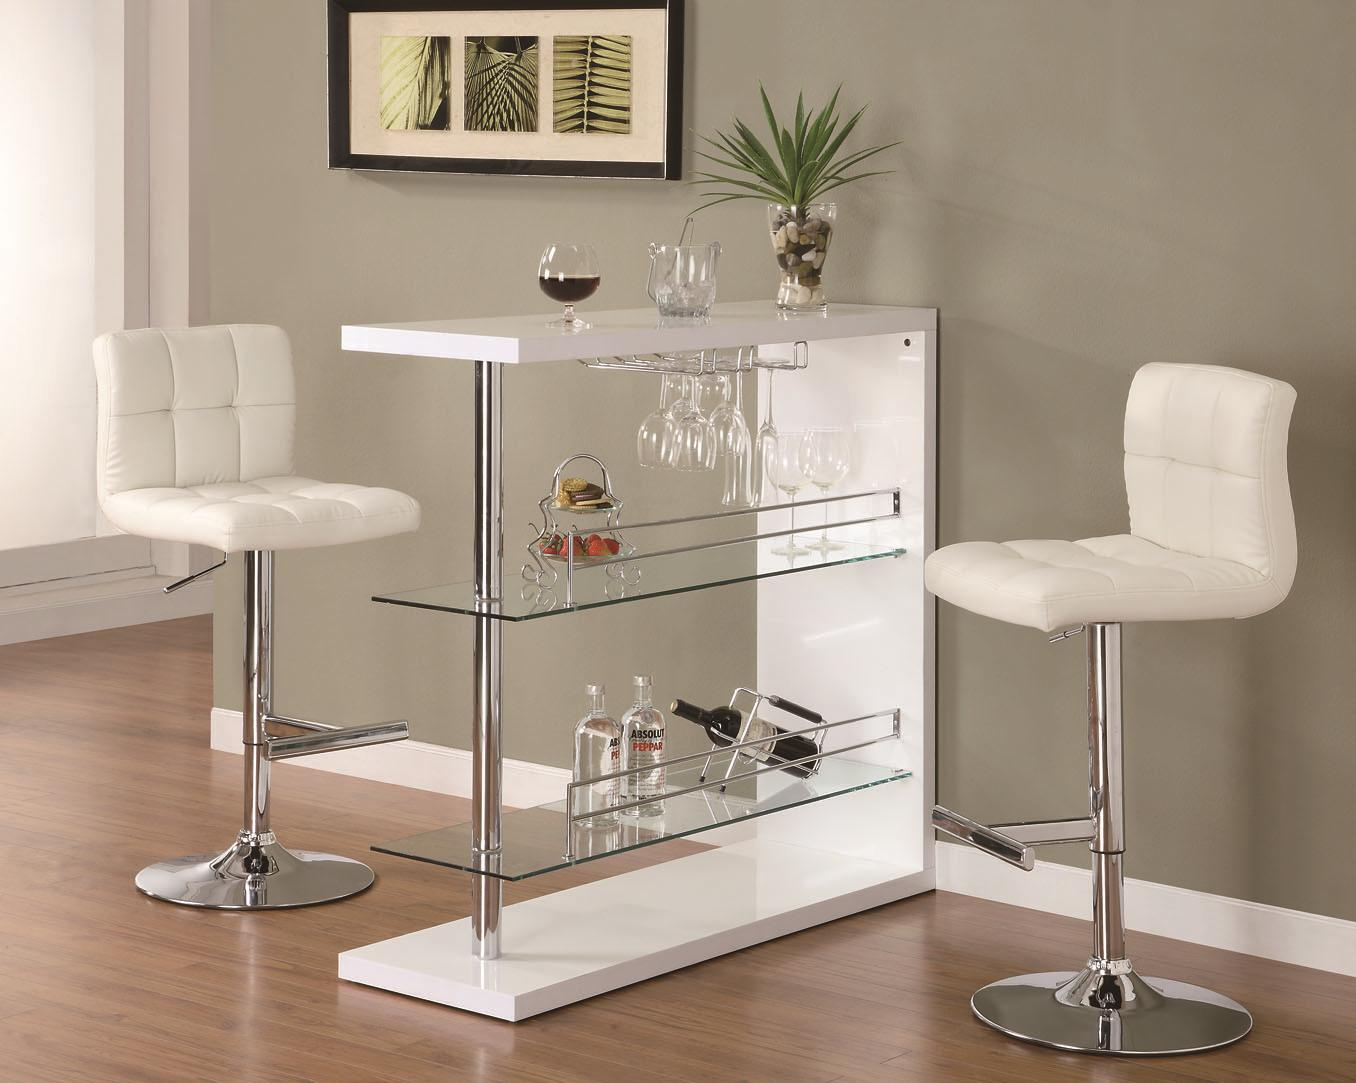 Bar Units and Bar Tables Contemporary Bar Set with Stools by Coaster at Lapeer Furniture & Mattress Center